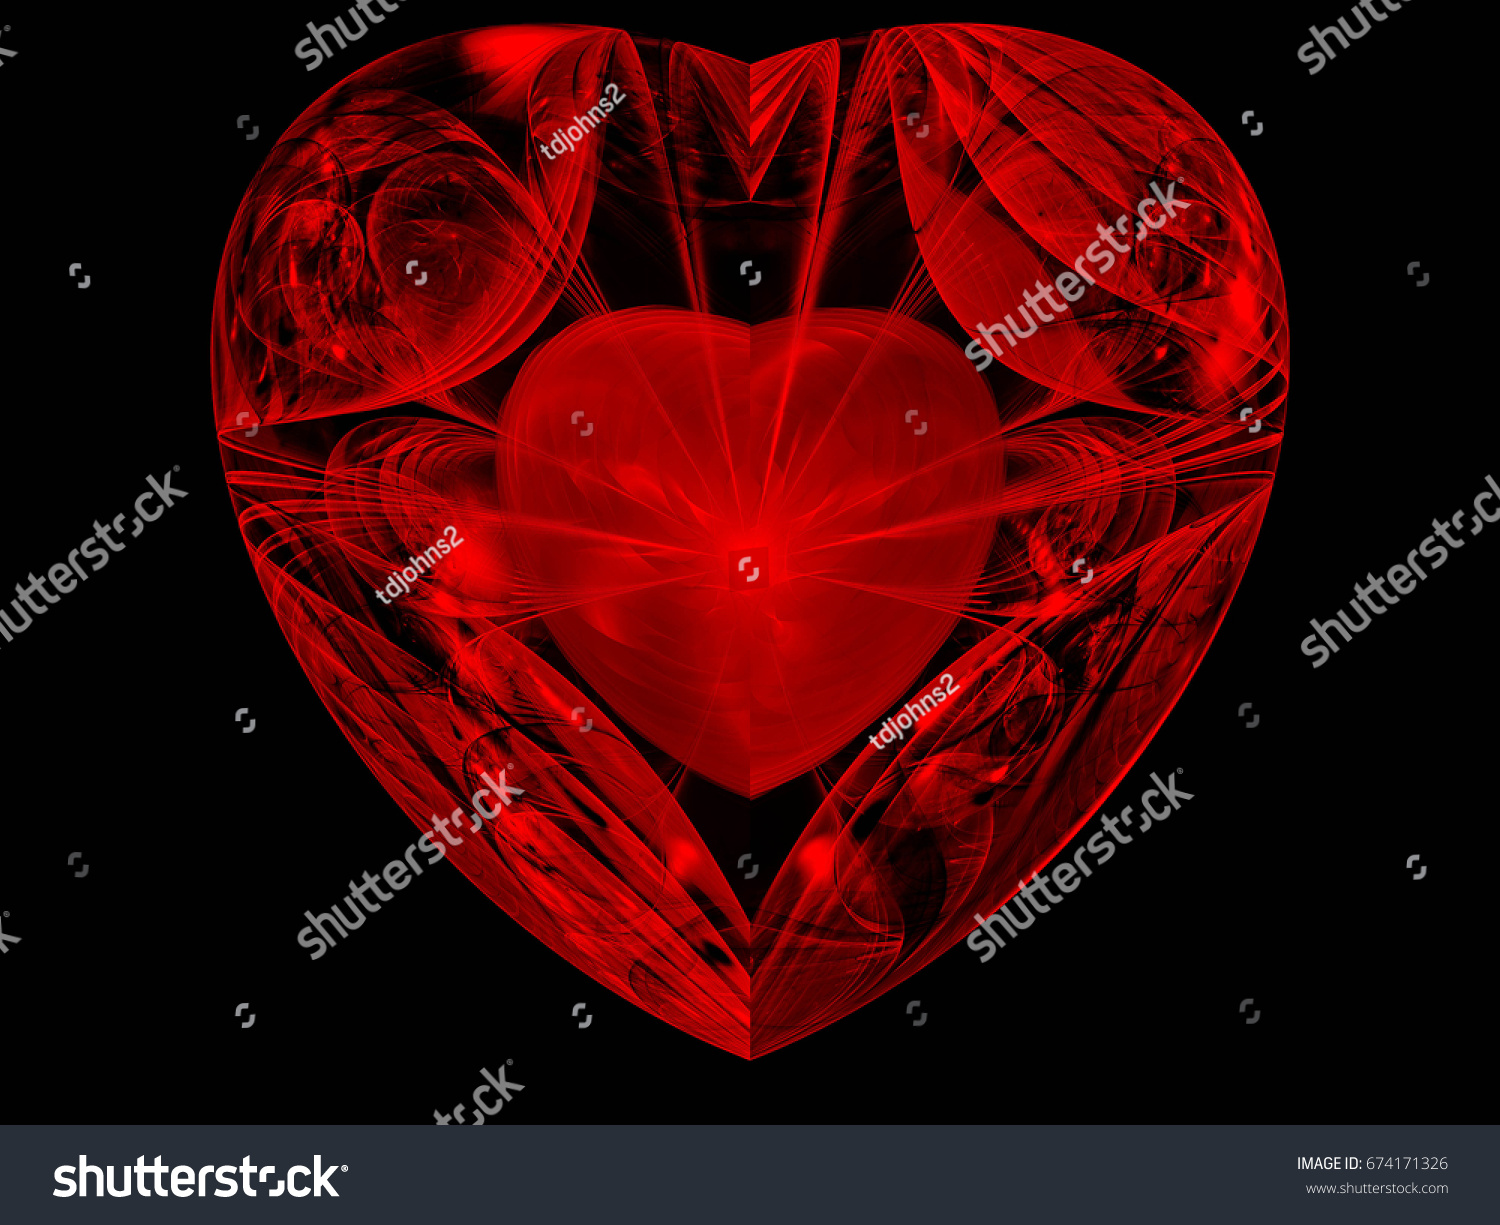 Abstract fractal heart within heart stock illustration 674171326 abstract fractal heart within a heart biocorpaavc Images